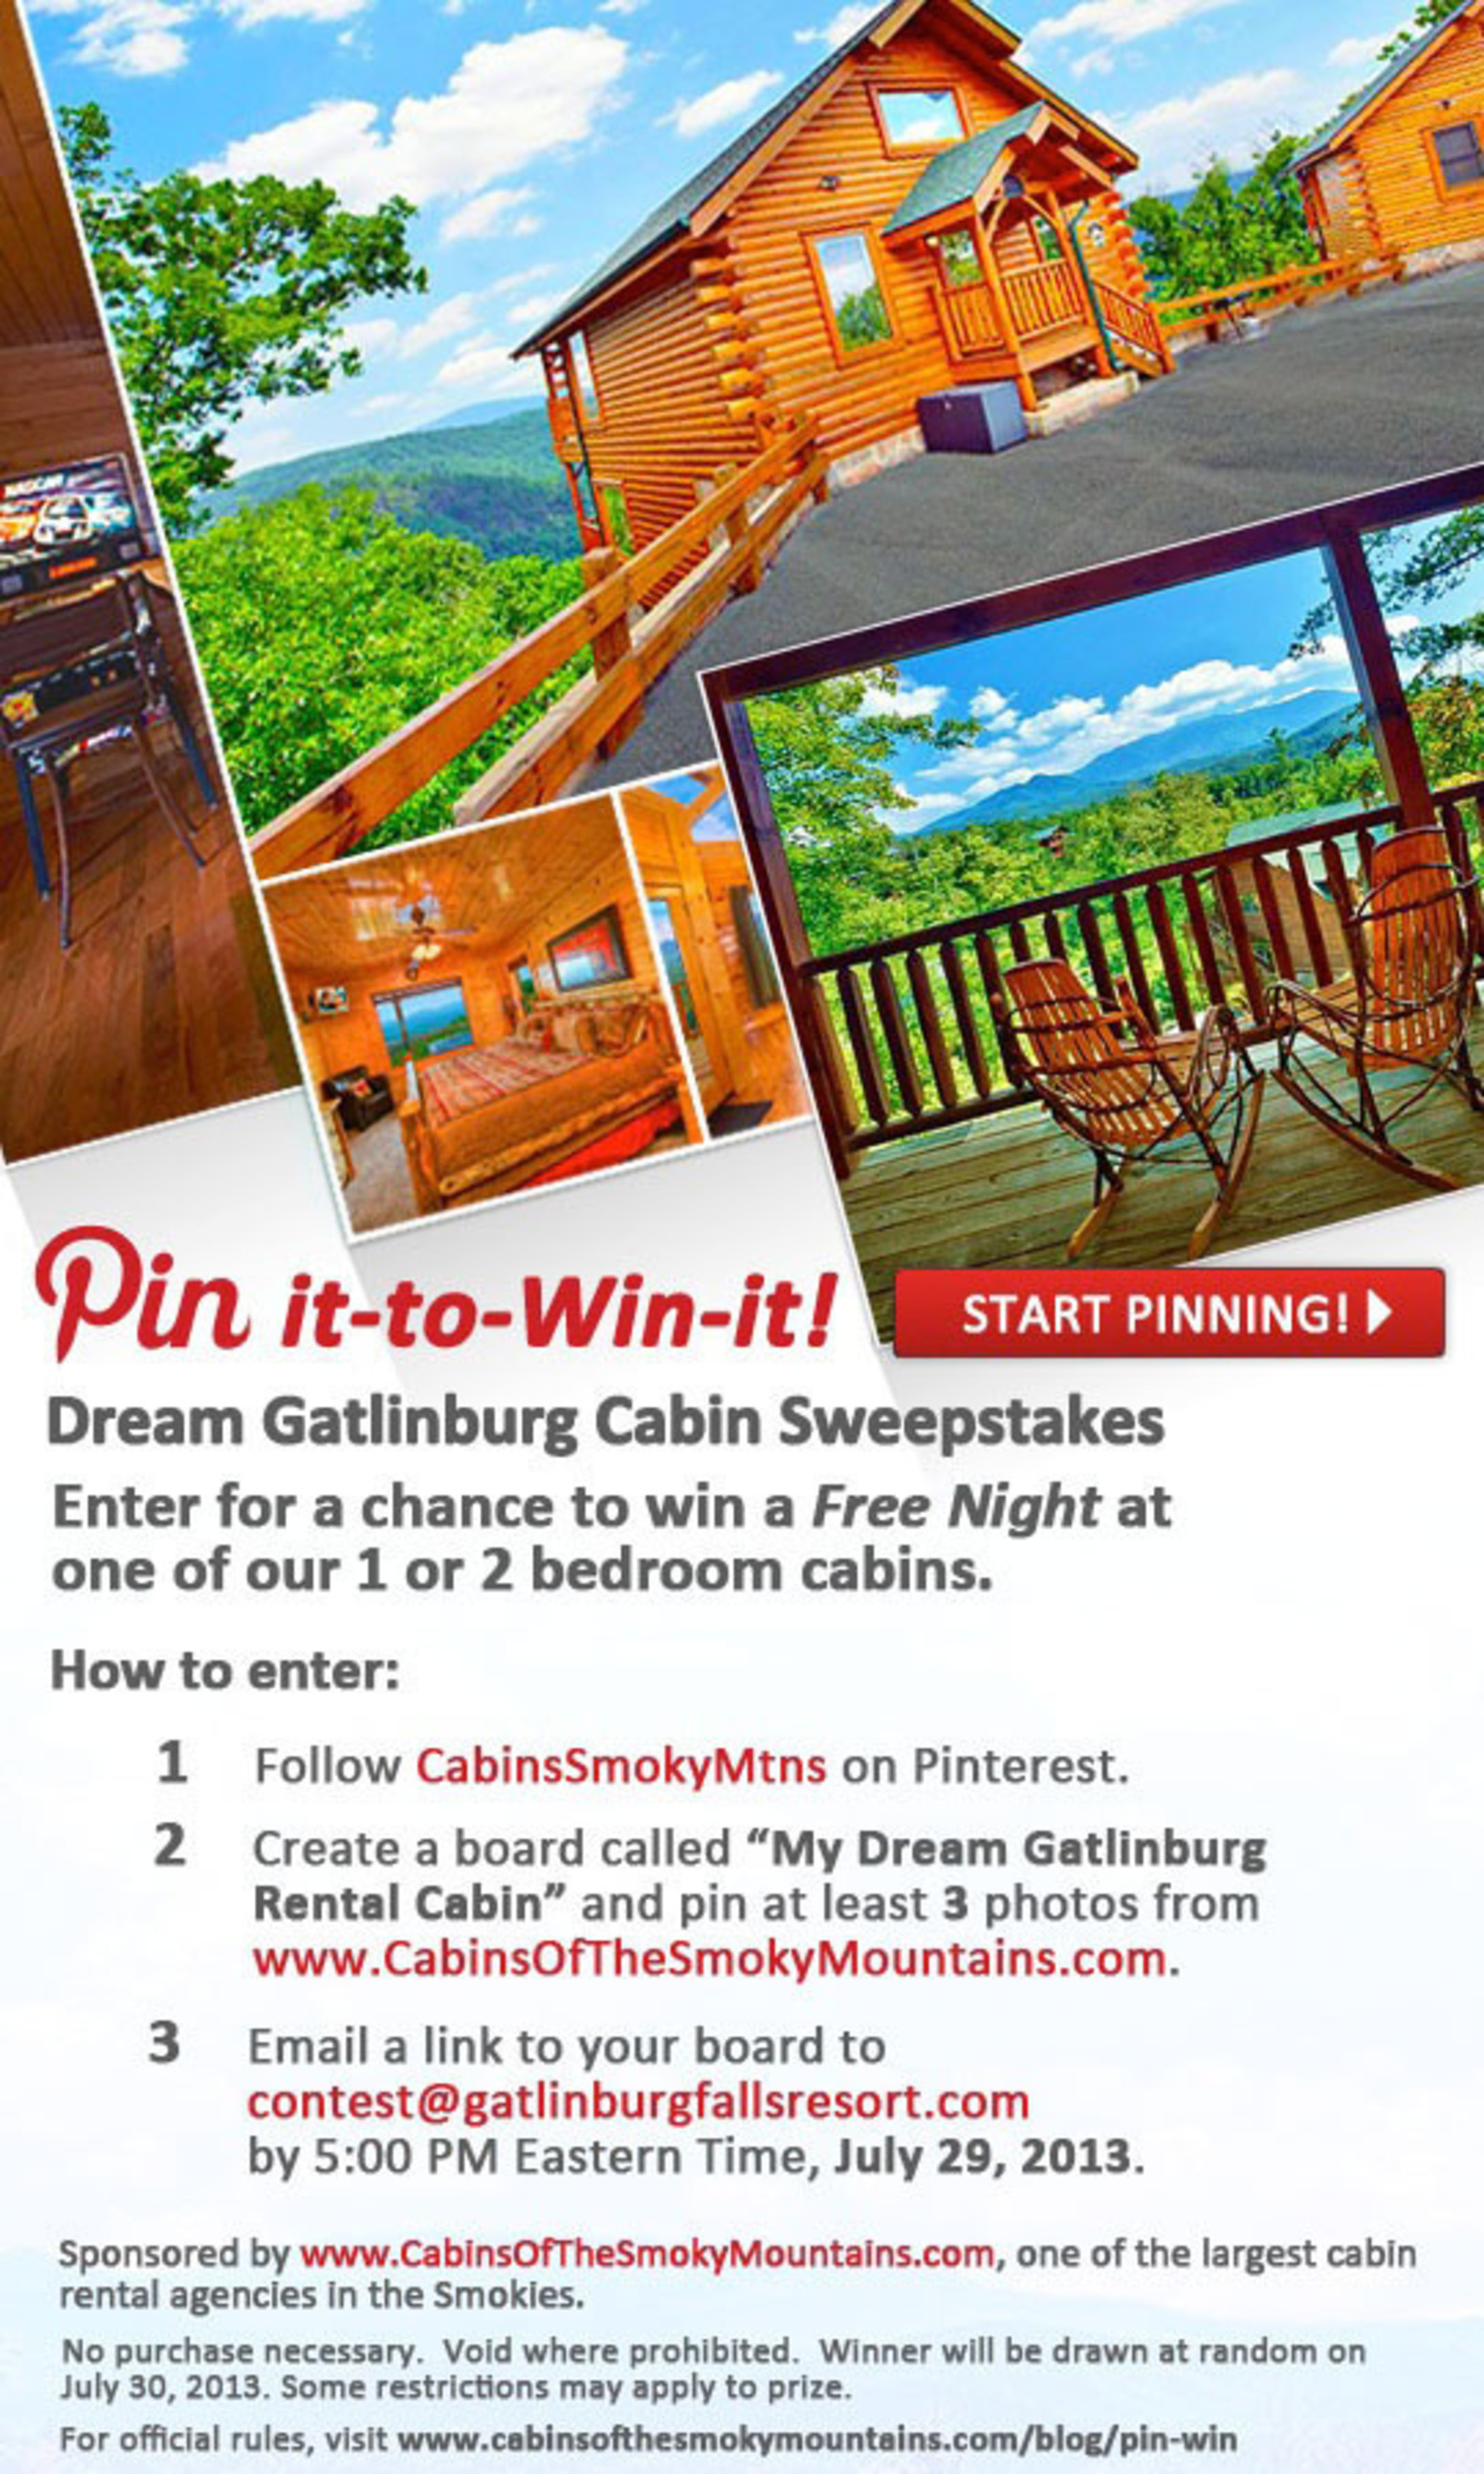 Gatlinburg's Cabins of the Smoky Mountains Launches 'Pin It To Win It' Sweepstakes